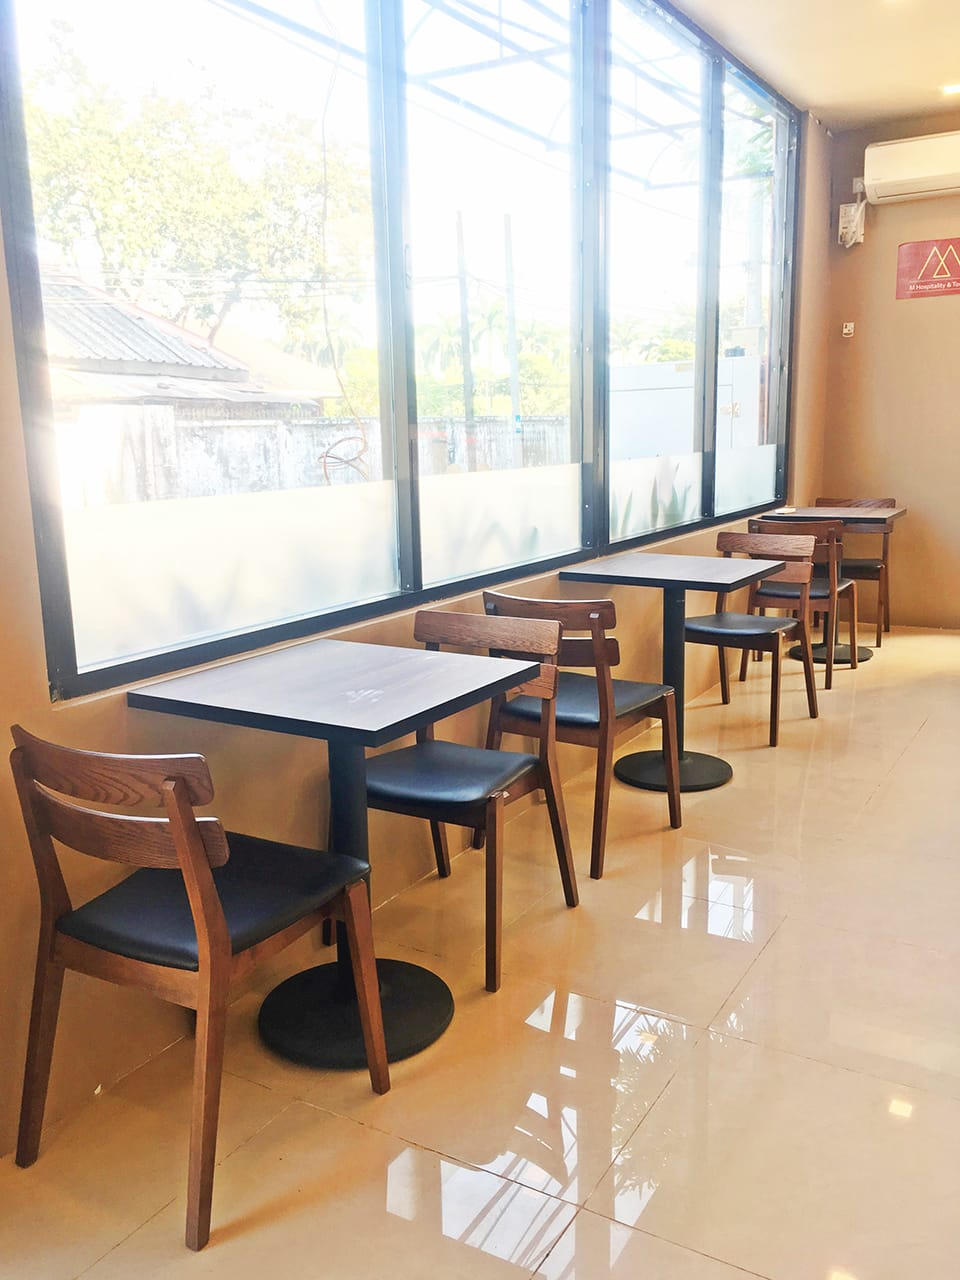 M Hospitality & Tourism Institute, Kamayut Township - Yangon, Myanmar | Product Seen: [Lisbon Chair & Customised Laminate Tabletop + Cosson Table Base]